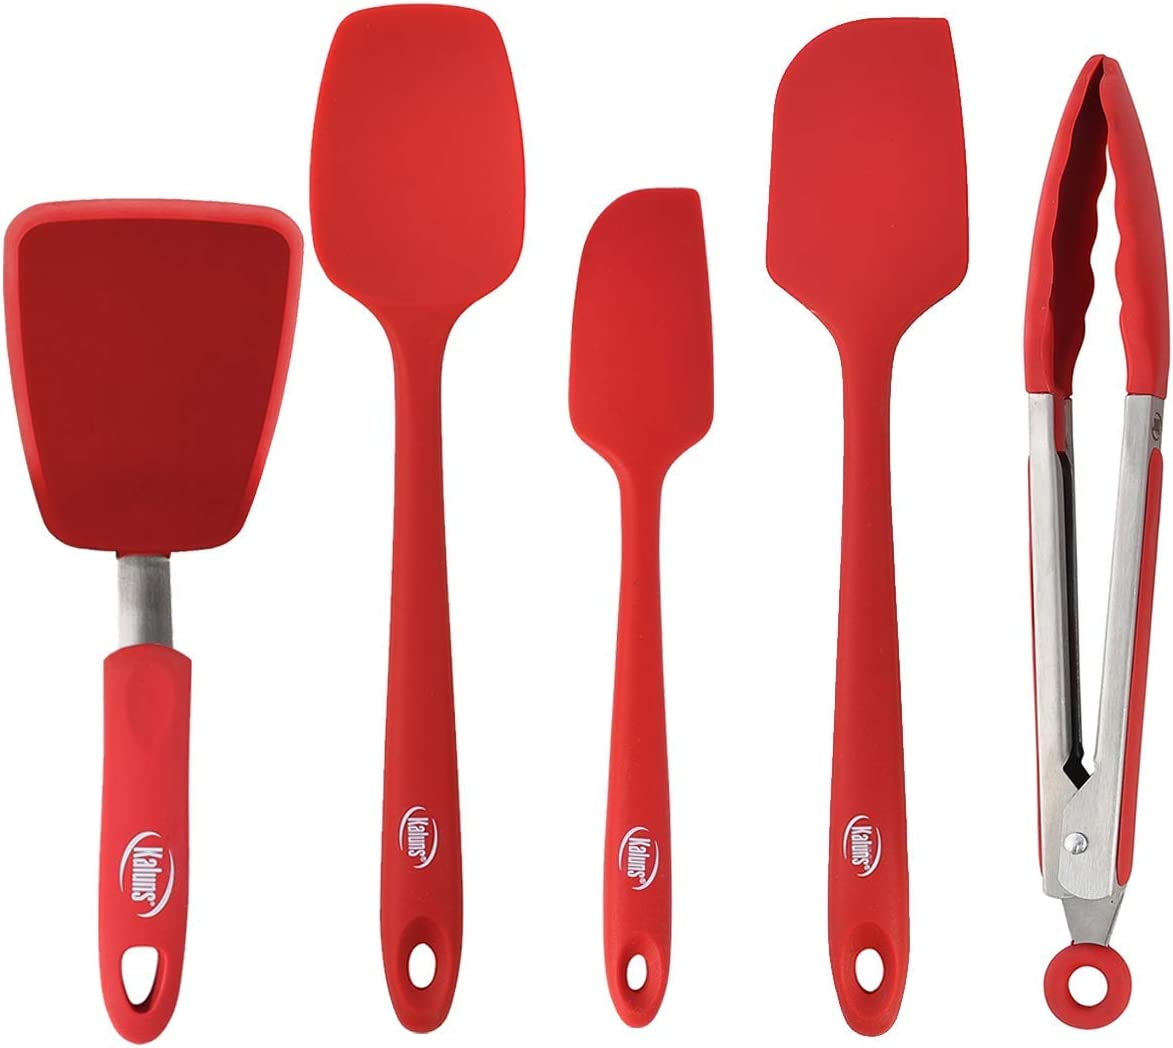 """Kaluns Red 5-Piece set Includes 3 Silicone Spatulas 1 Turner and 1 9"""" Tong Kitchen Tools Best for Cooking, Baking and Mixing, Strong Stainless steel core design Non-stick and 600F Heat resistant"""